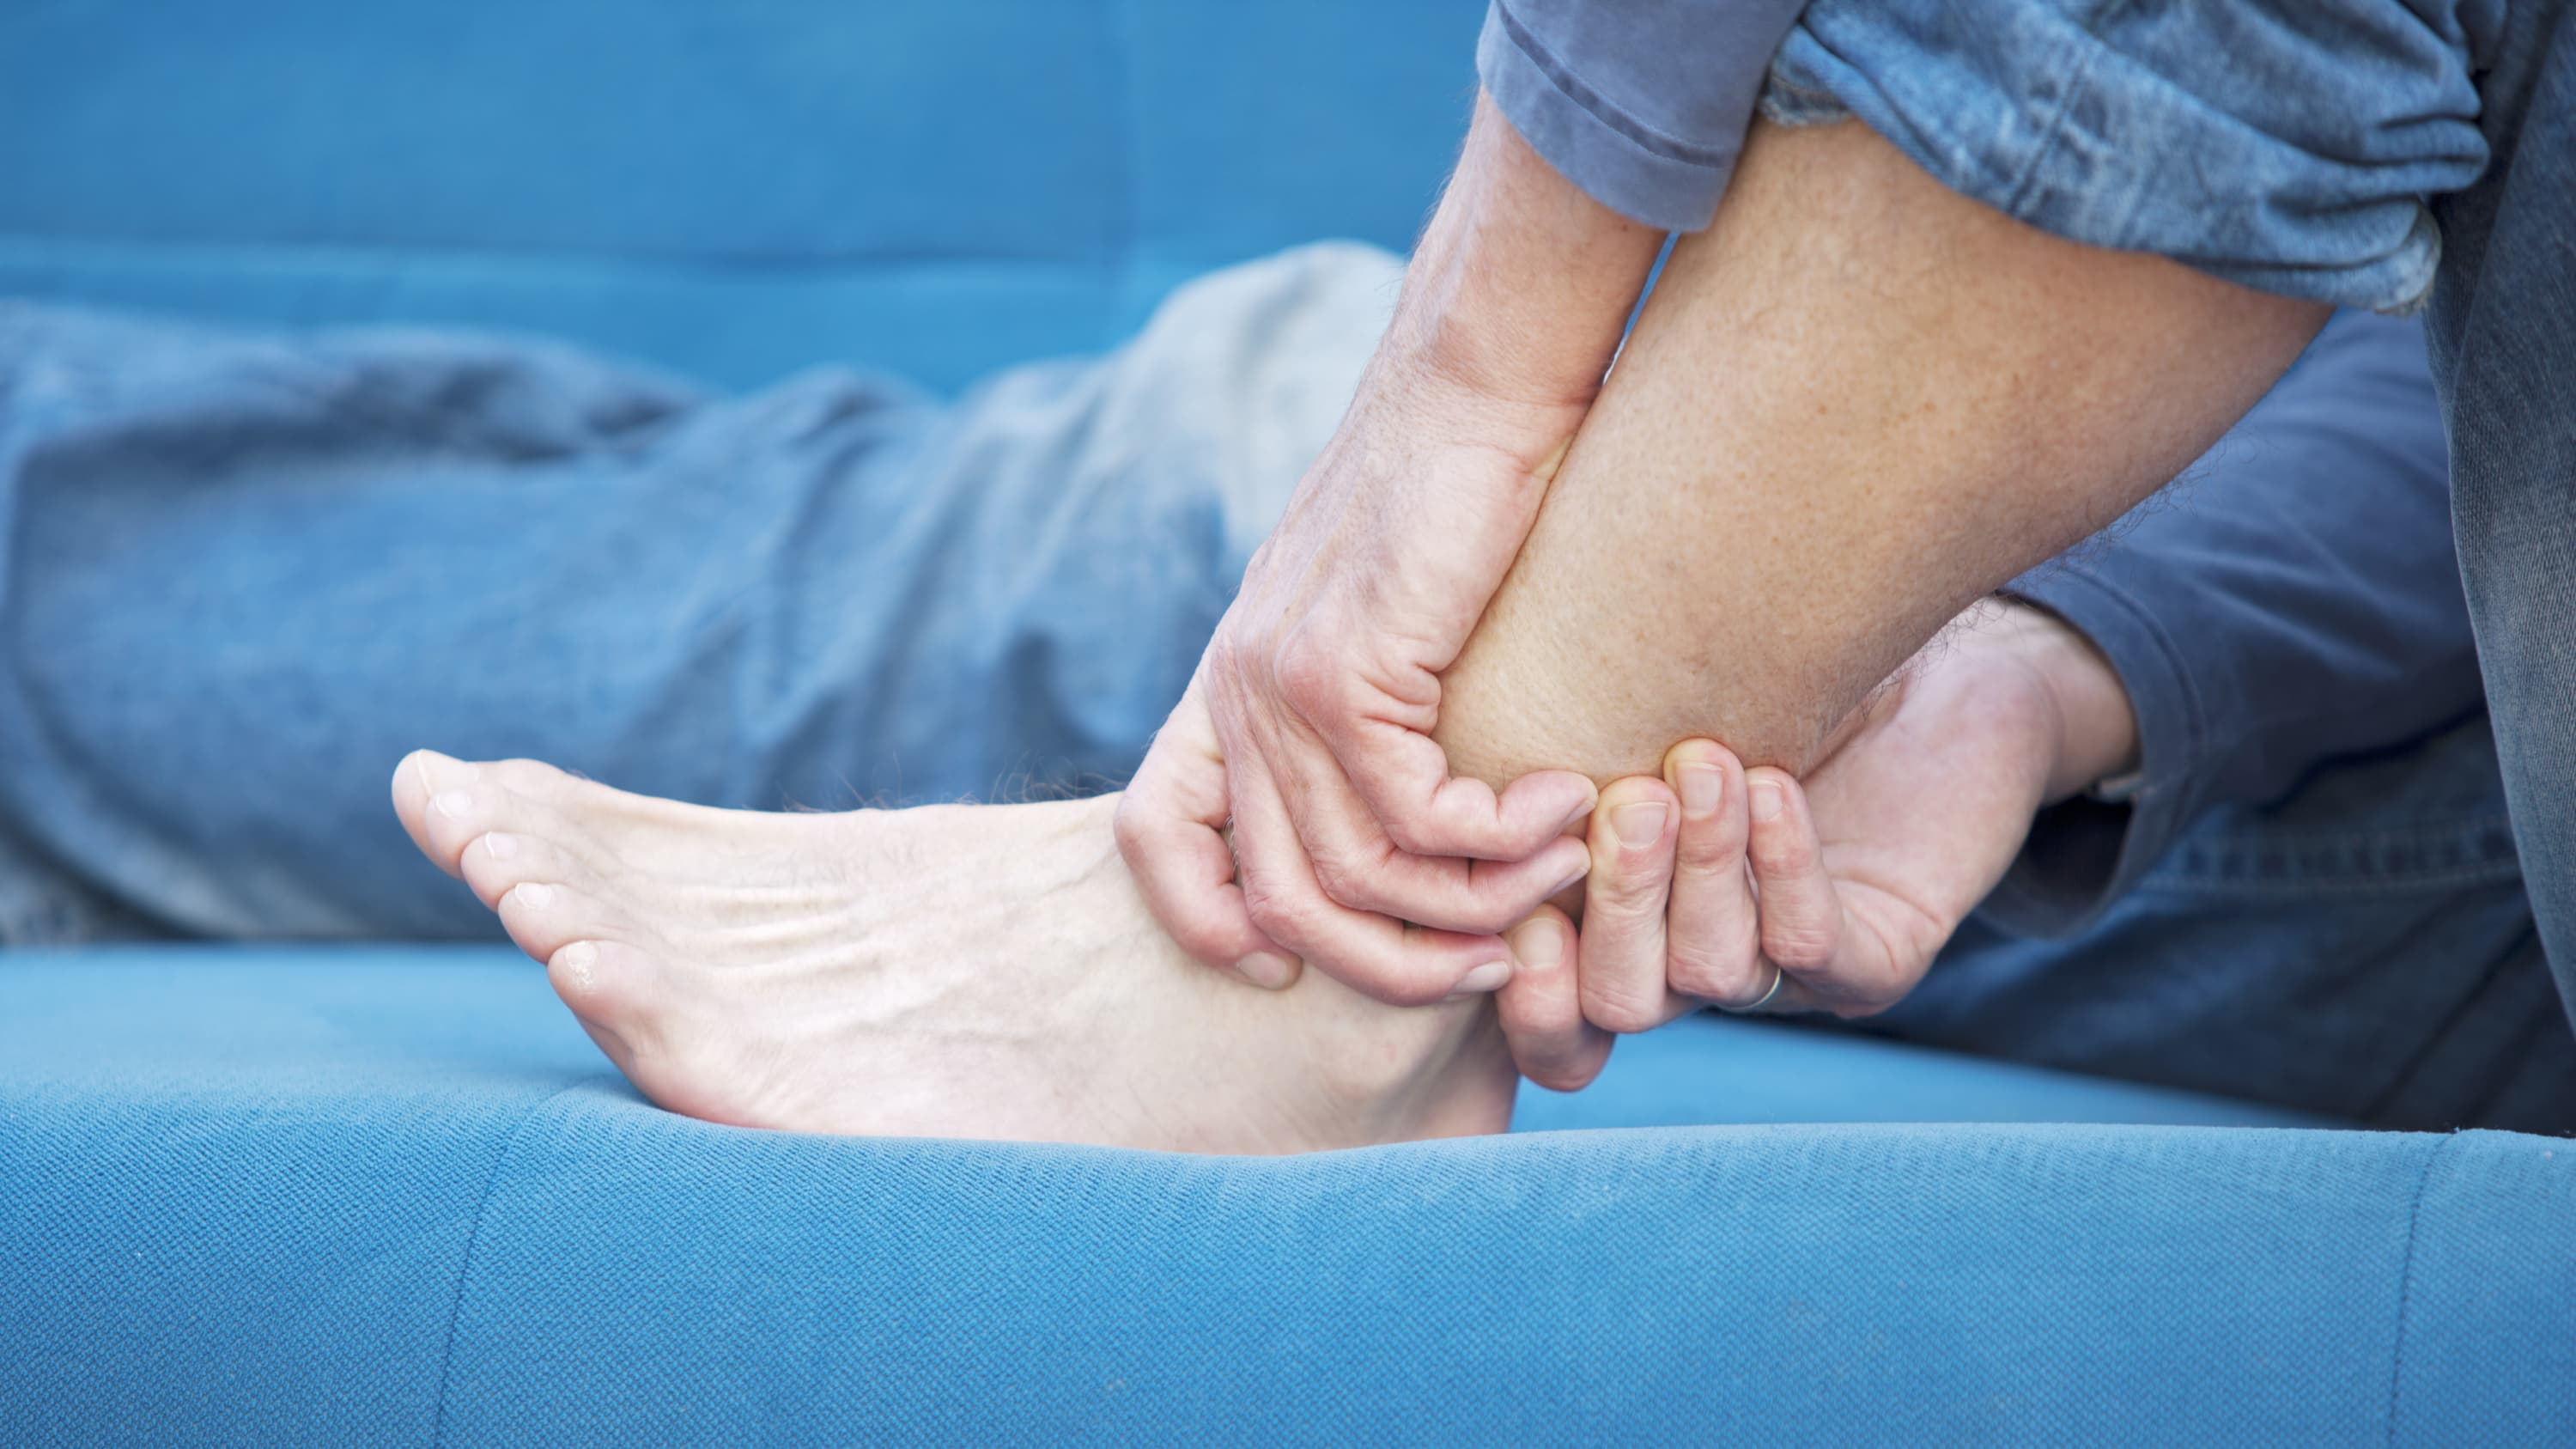 A man with lupus nephritis gripping his ankle on a blue couch.